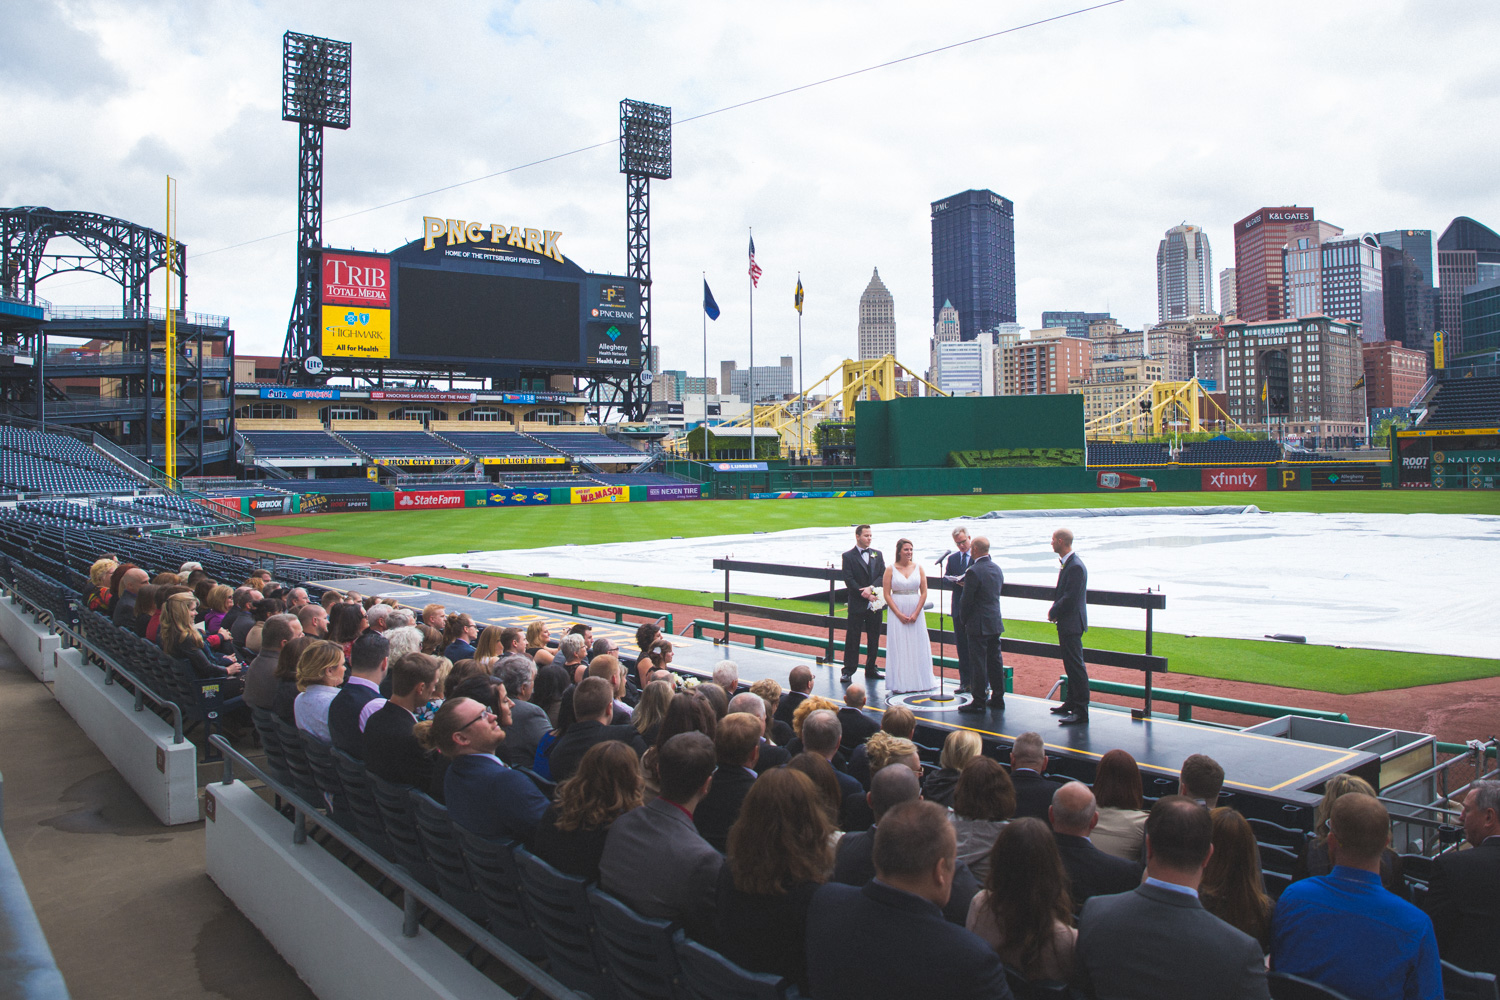 wedding-at-pnc-park-convention-center-downtown-pittsburgh-man-nguyen-photography-5